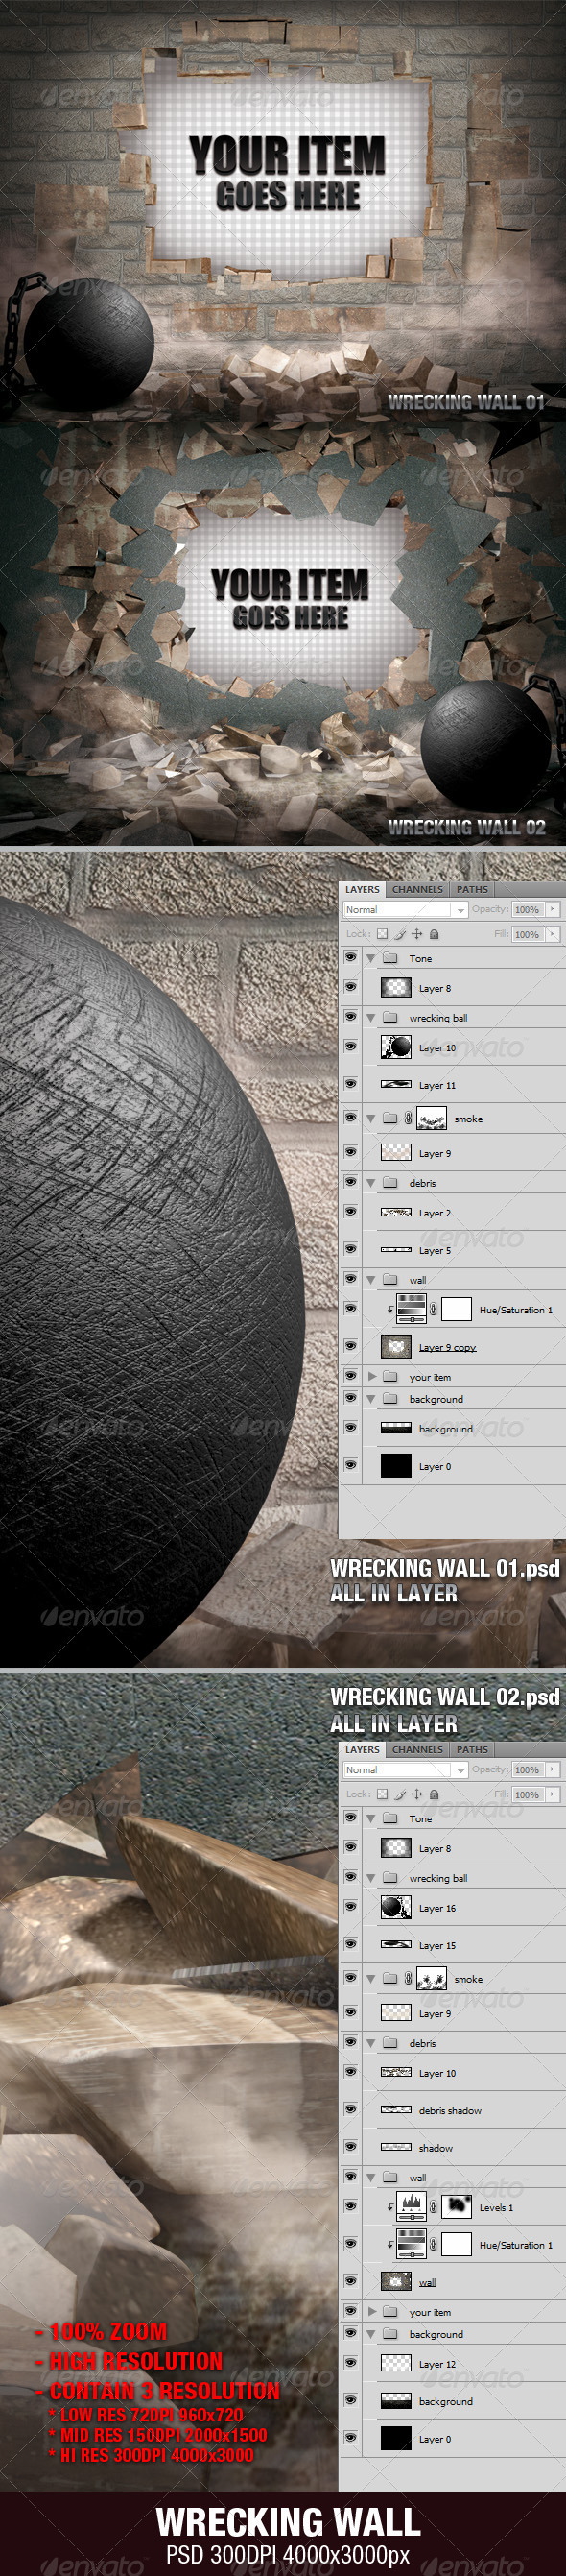 Wrecking Wall - Miscellaneous Backgrounds